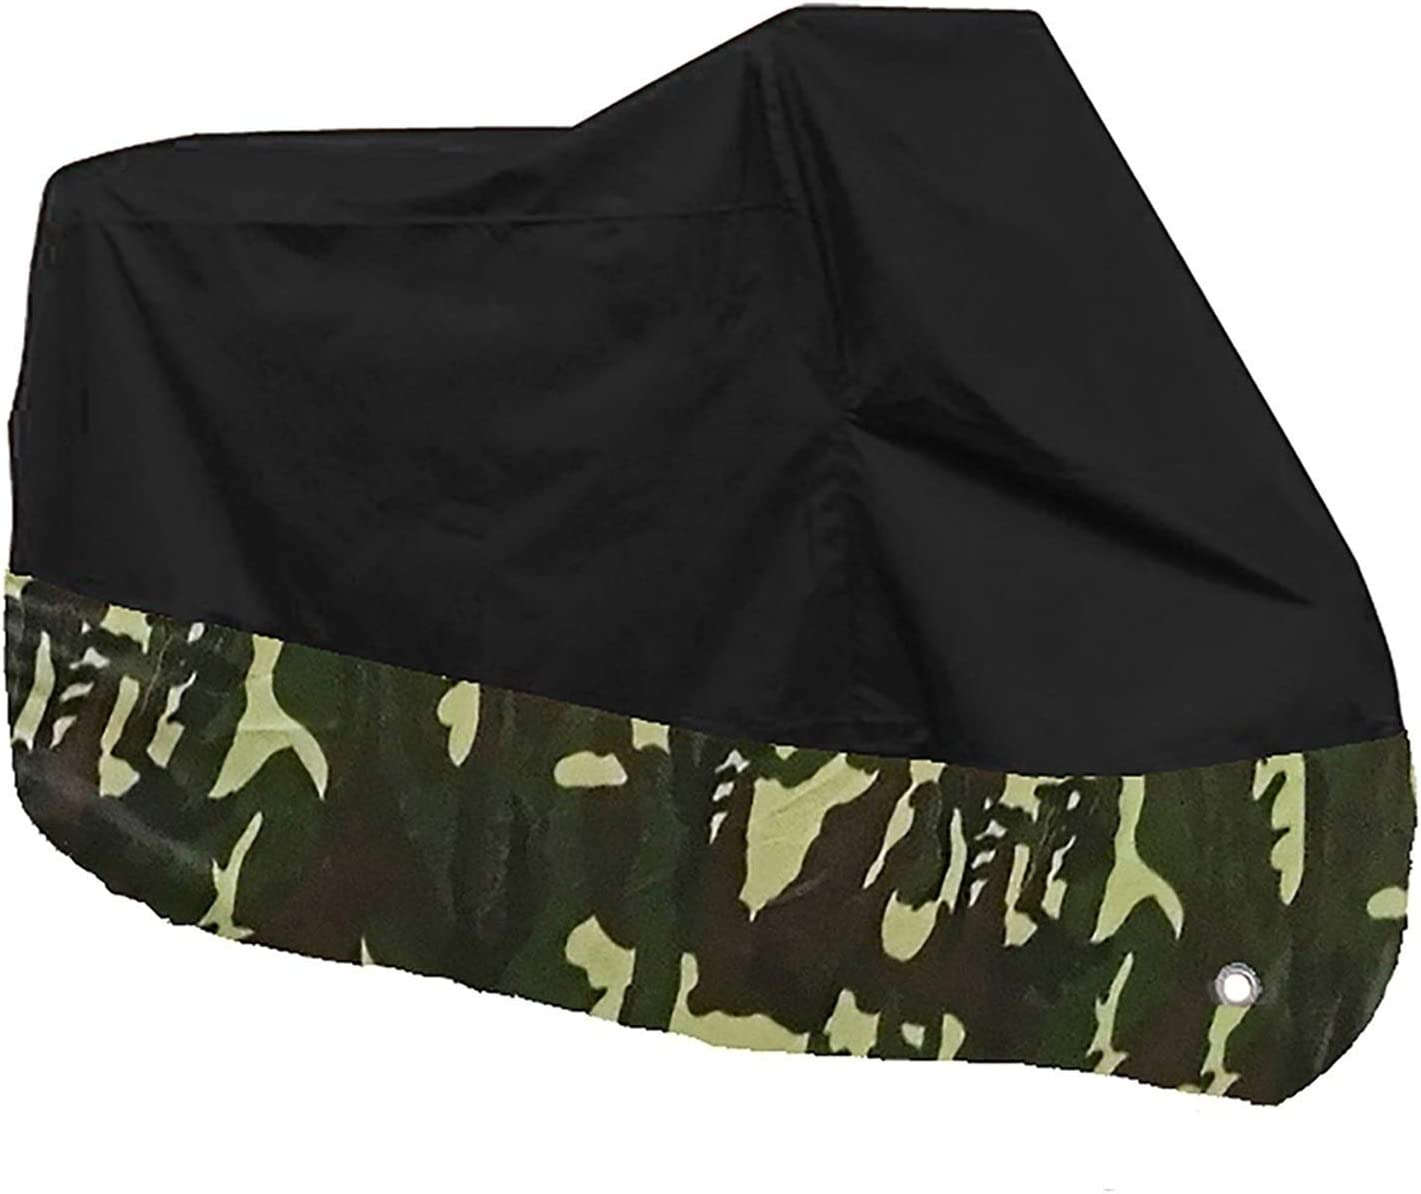 Max 72% OFF Saladplates-LXM Gifts Motorcycle Cover with Compatible Motorbike